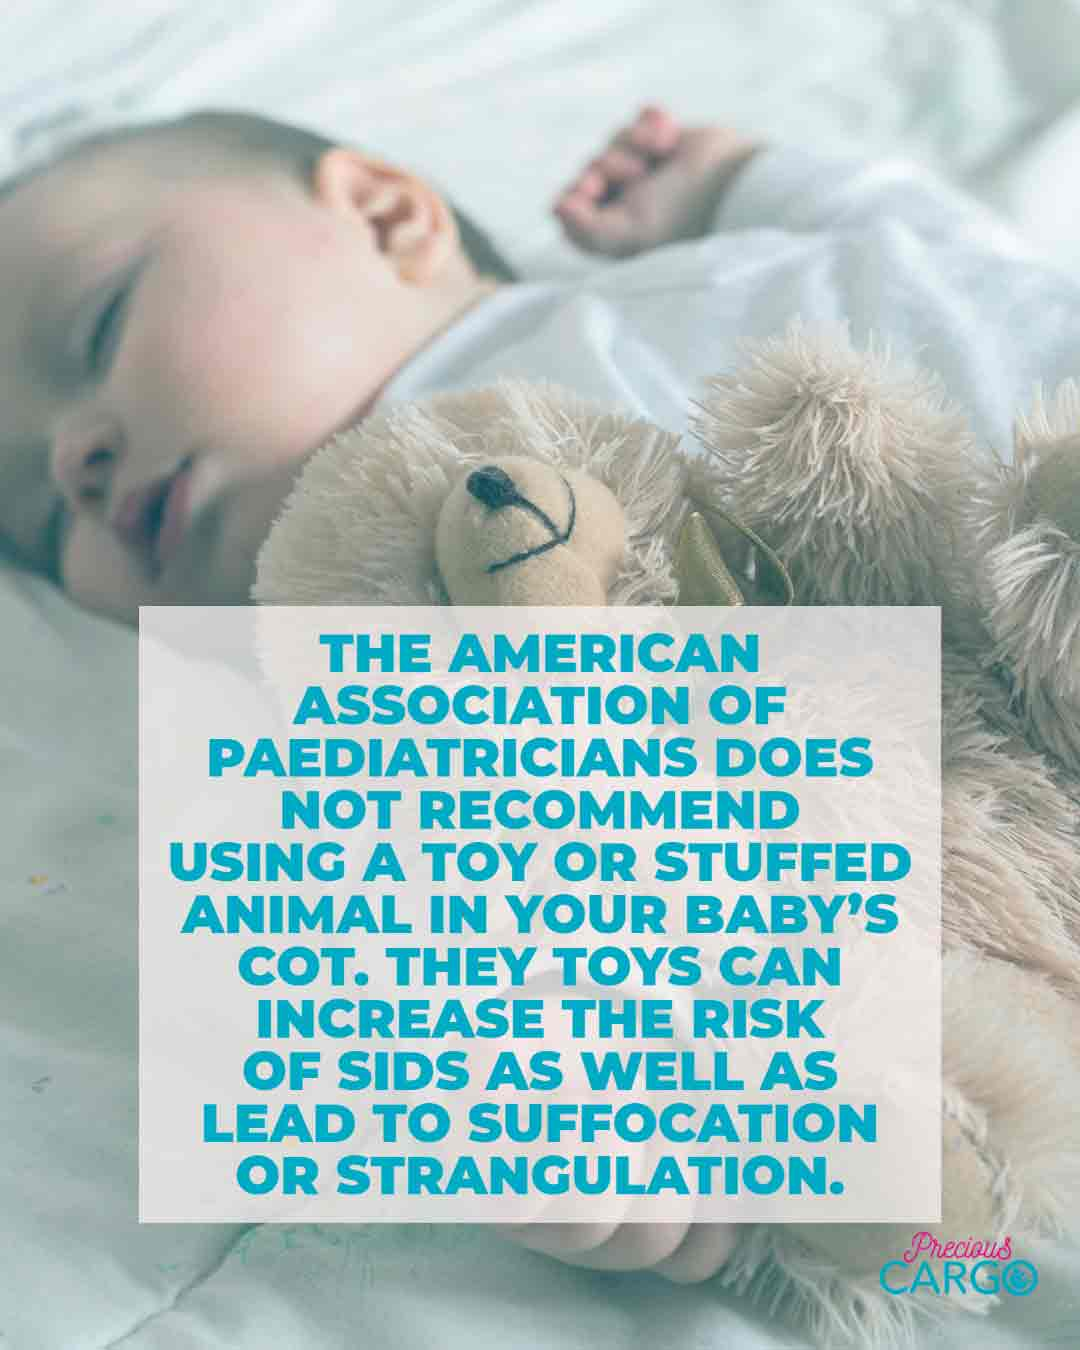 is it safe to use a soft toy in my baby's cot